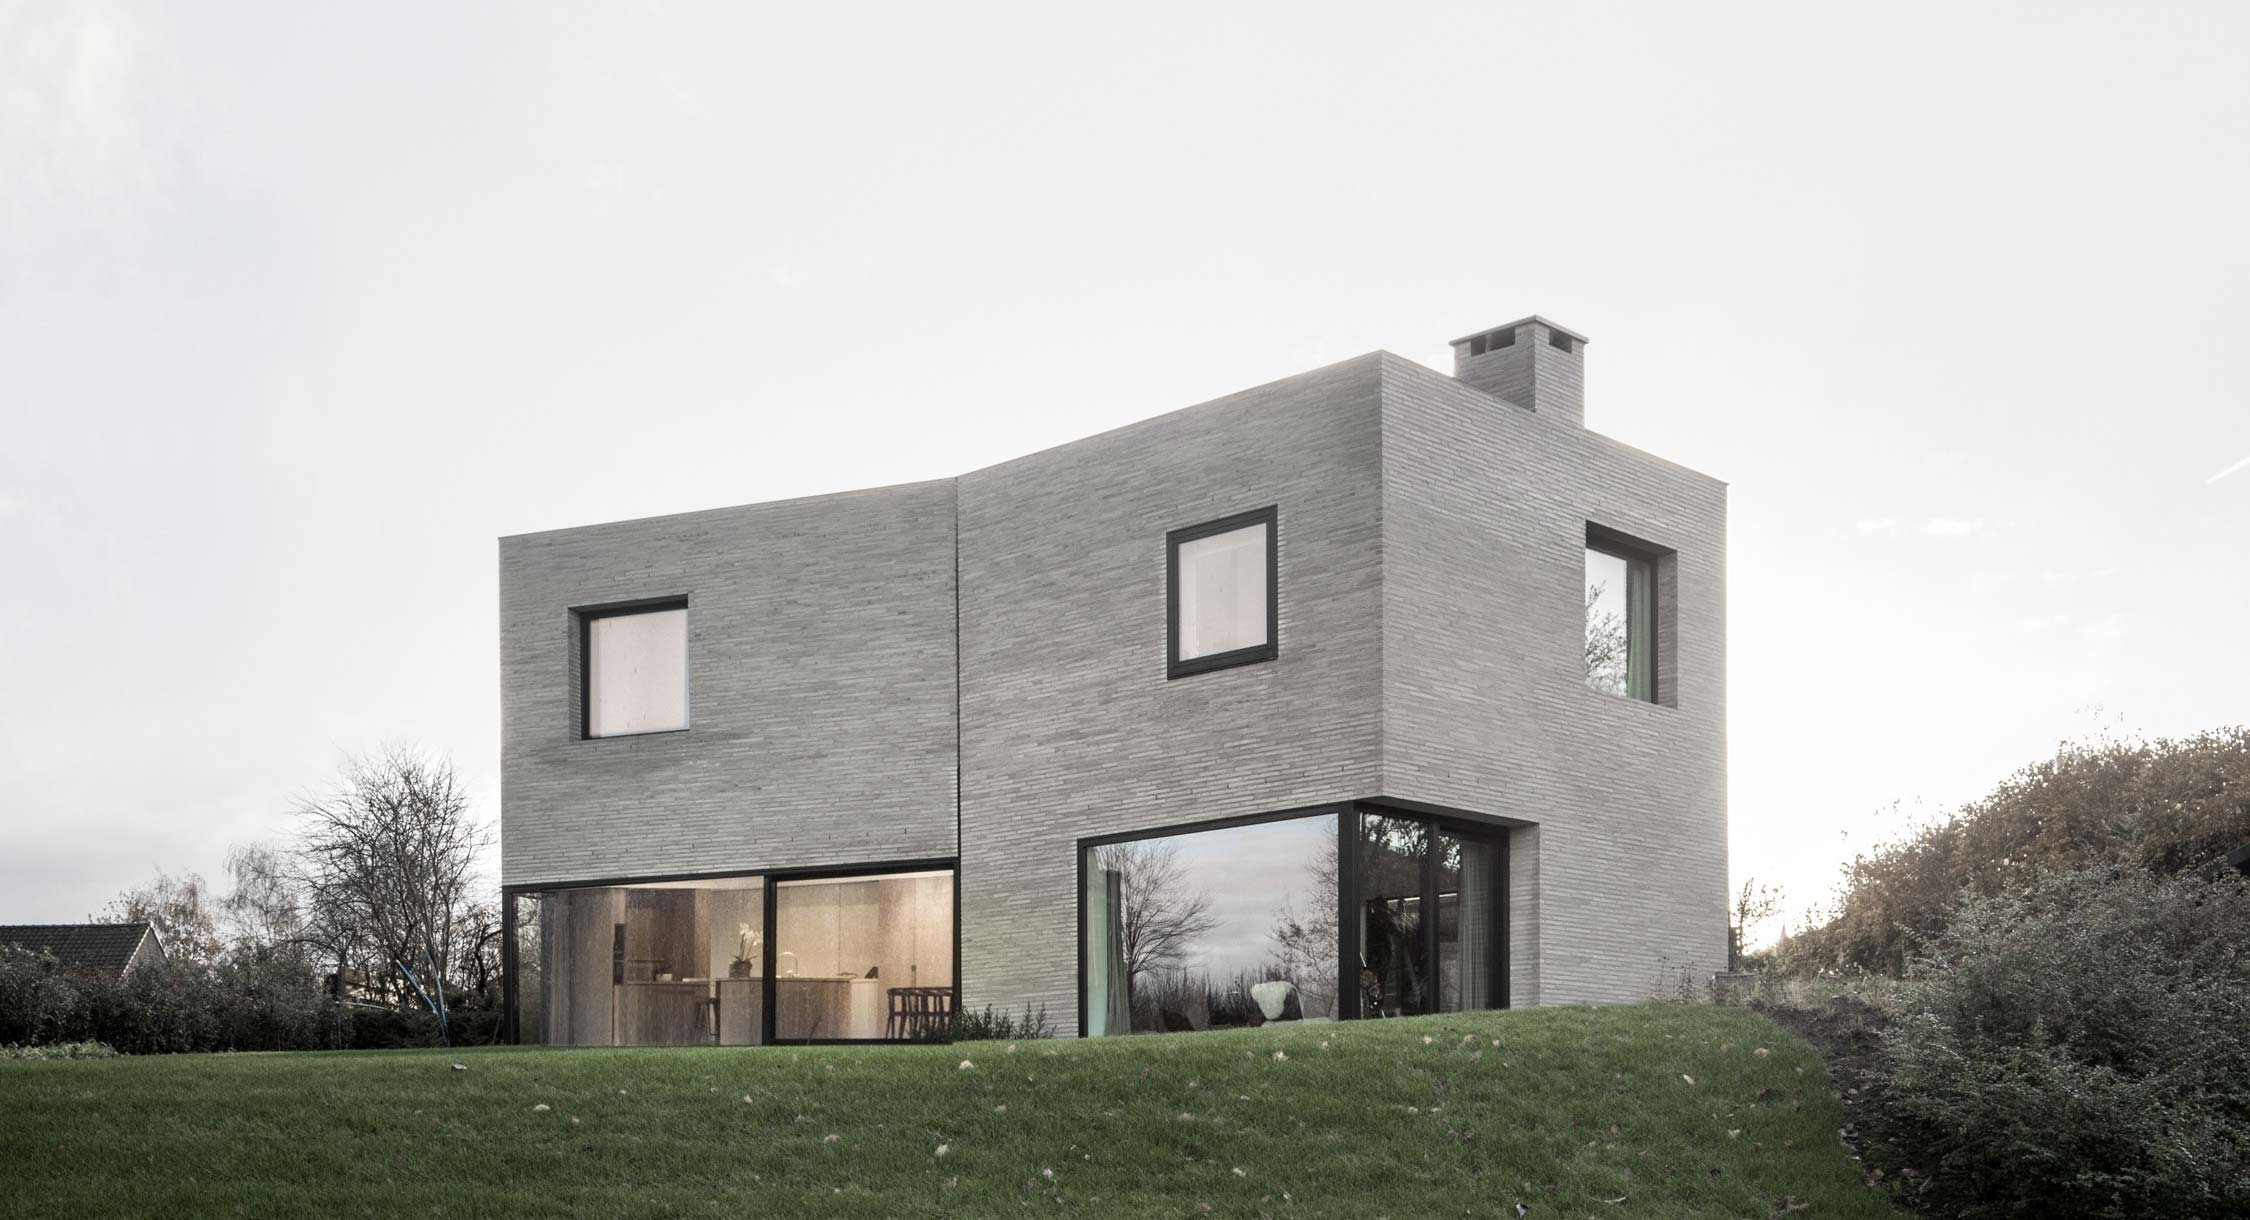 Graux & Baeyens' House J-VC Is Belgium's Most Stylish Family Home